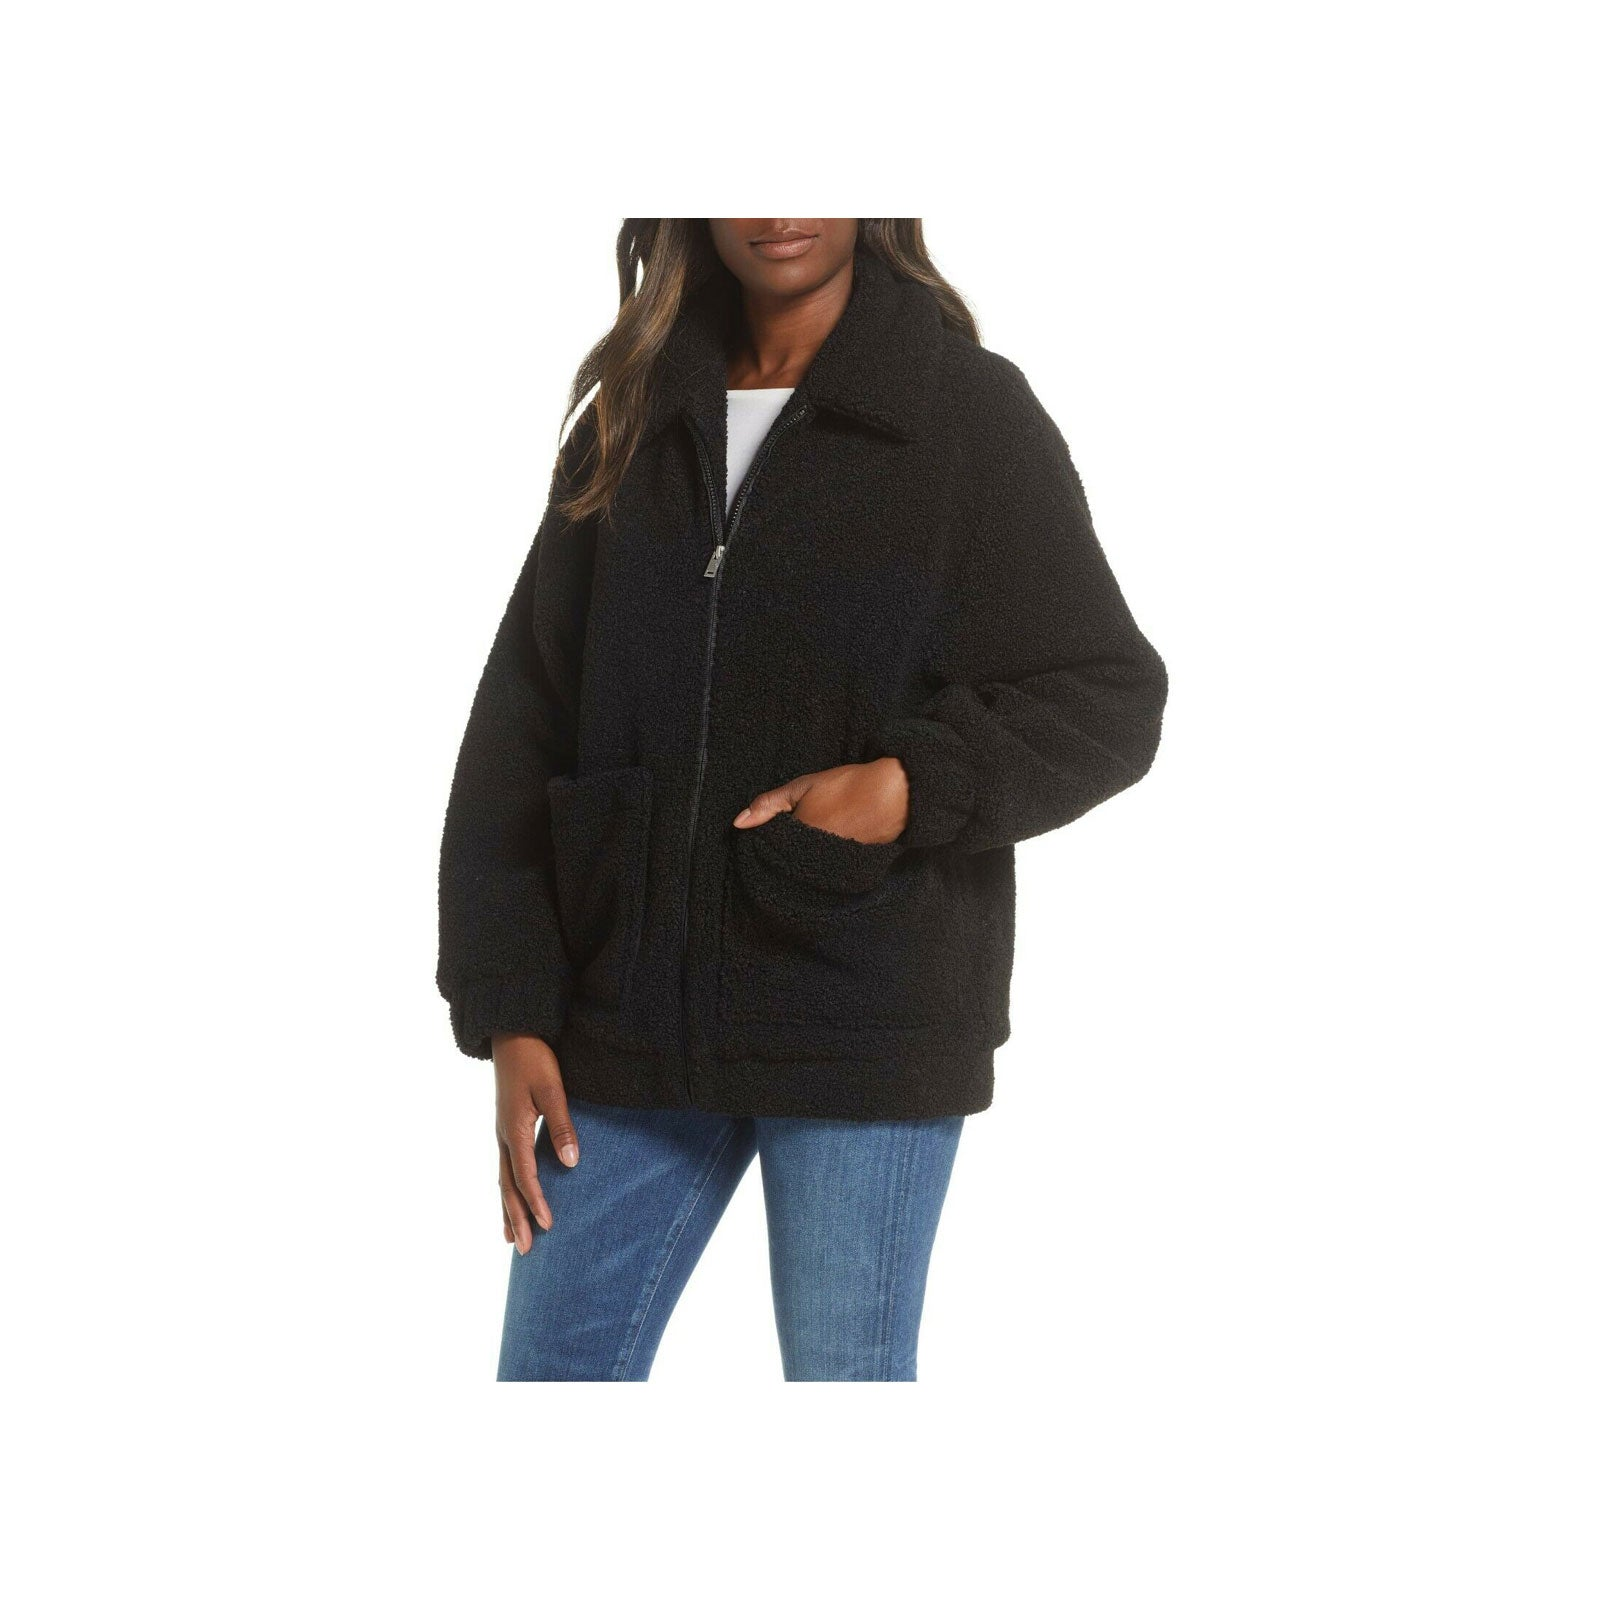 UGG Jackeline Teddy Bear Jacket- Black